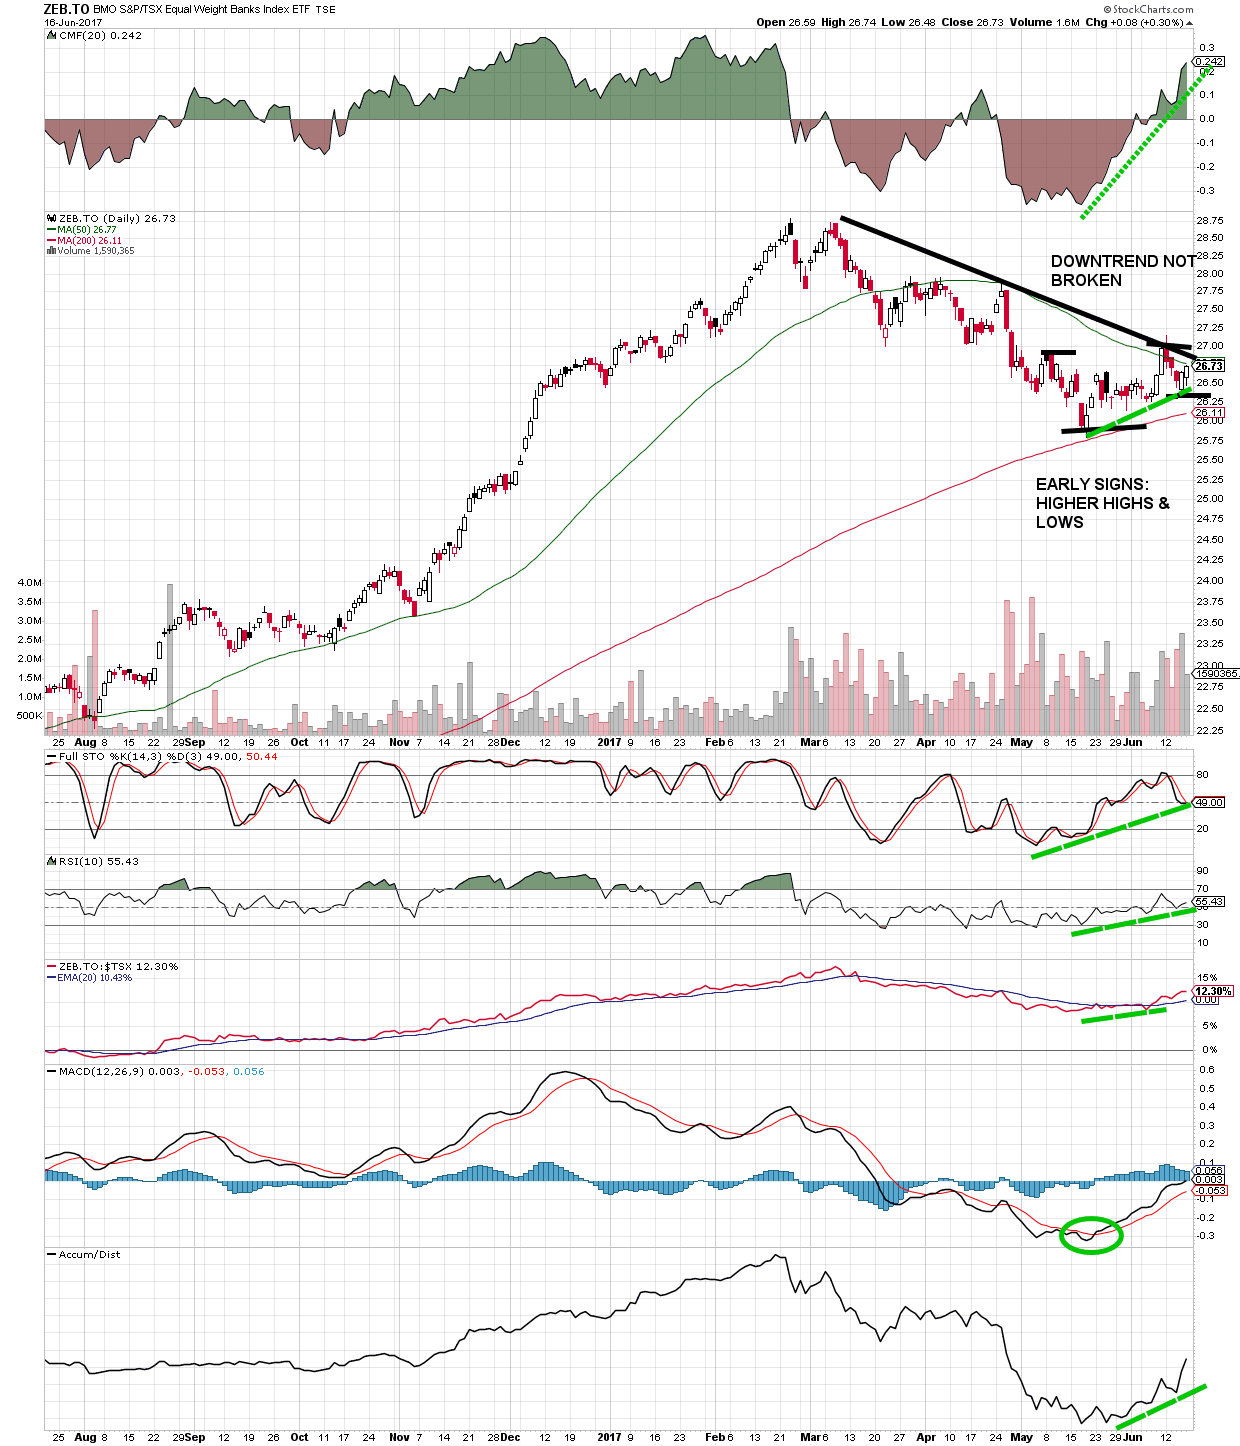 Canadian Banks ETF ZEB daily chart showing positive technical indicators for breakout